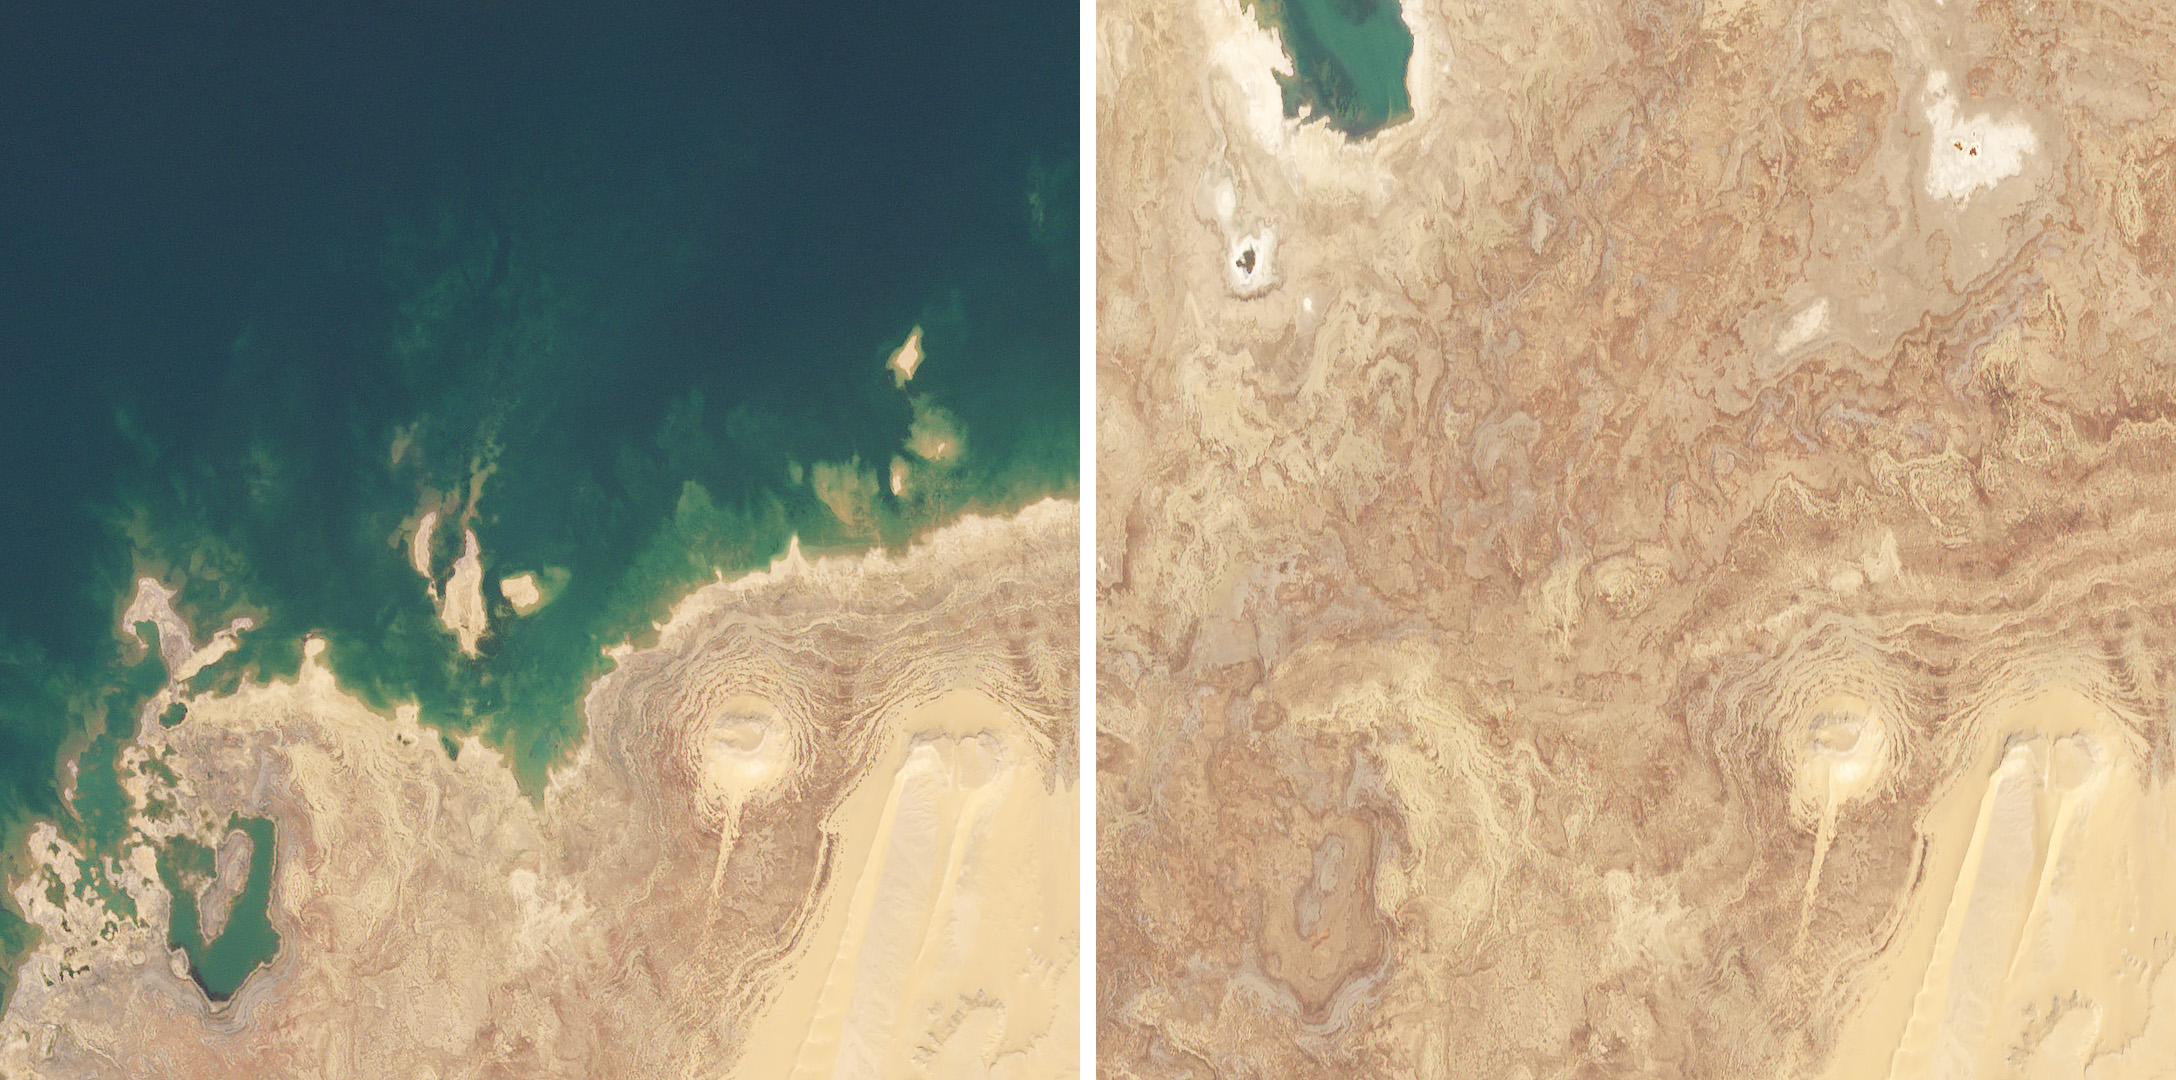 Since filling in the late 1990s, the Toshka Lakes in southern Egypt have fluctuated wildly due to changes in rainfall over the Nile River Watershed. These changes are visible in complex fossil shorelines in the dry lake-bed. These RapidEye images show the changes in one of the lakes from January 9, 2011 to February 28, 2019. (c) 2011 and 2019, Planet Labs Inc. All Rights Reserved.